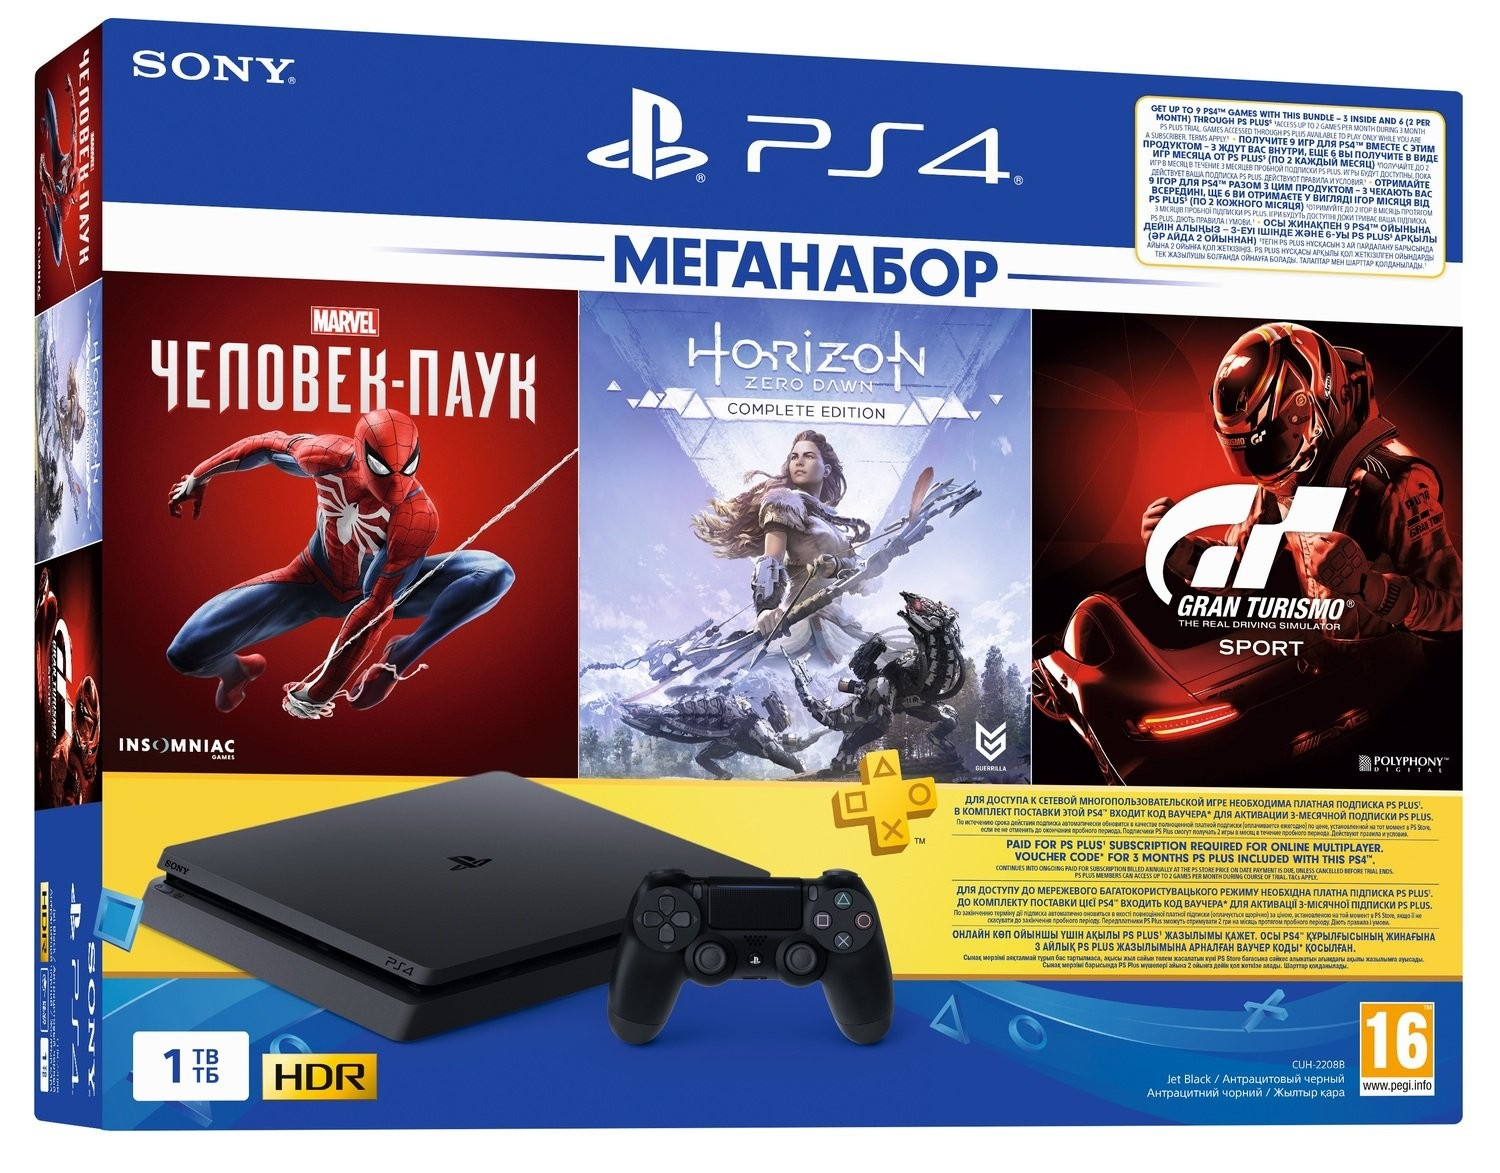 Sony PlayStation 4 Slim 1TB Black Bundle + Marvel's Spider-Man | Человек-Паук + Horizon Zero Dawn. Complete Edition + Gran Turismo Sport + PSPlus 3 месяца